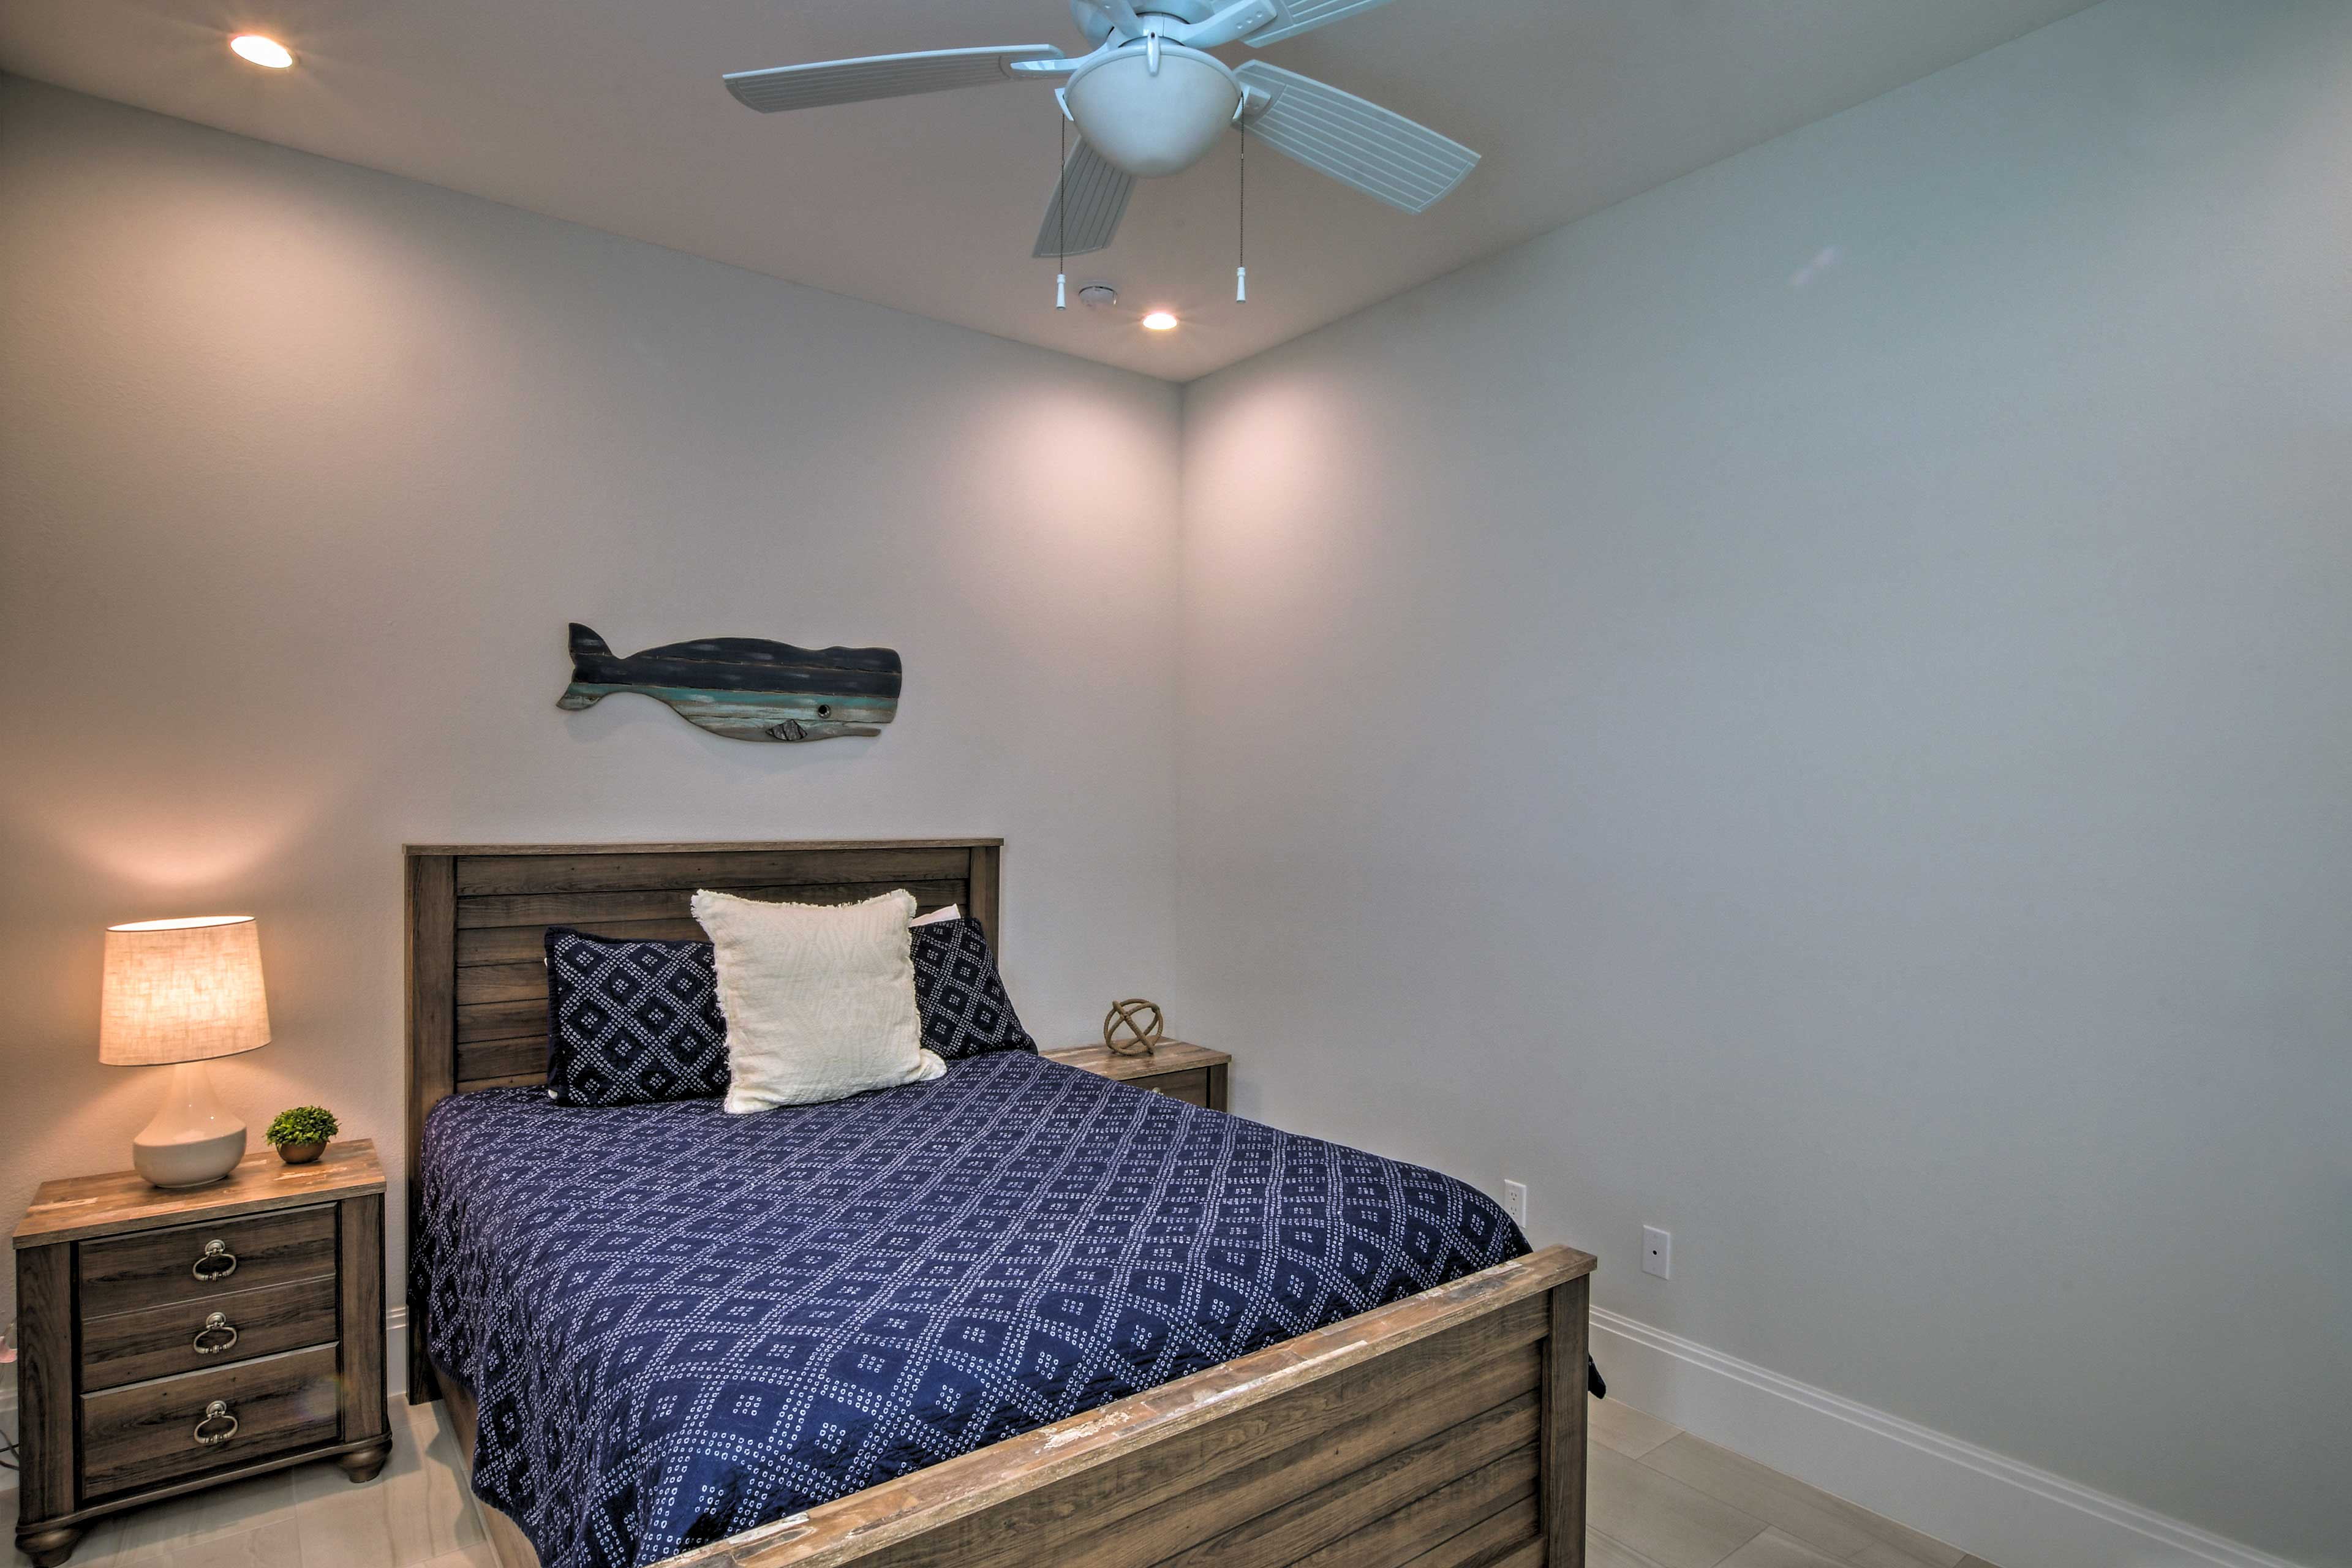 You're sure to sleep easily beneath the cooling ceiling fan.